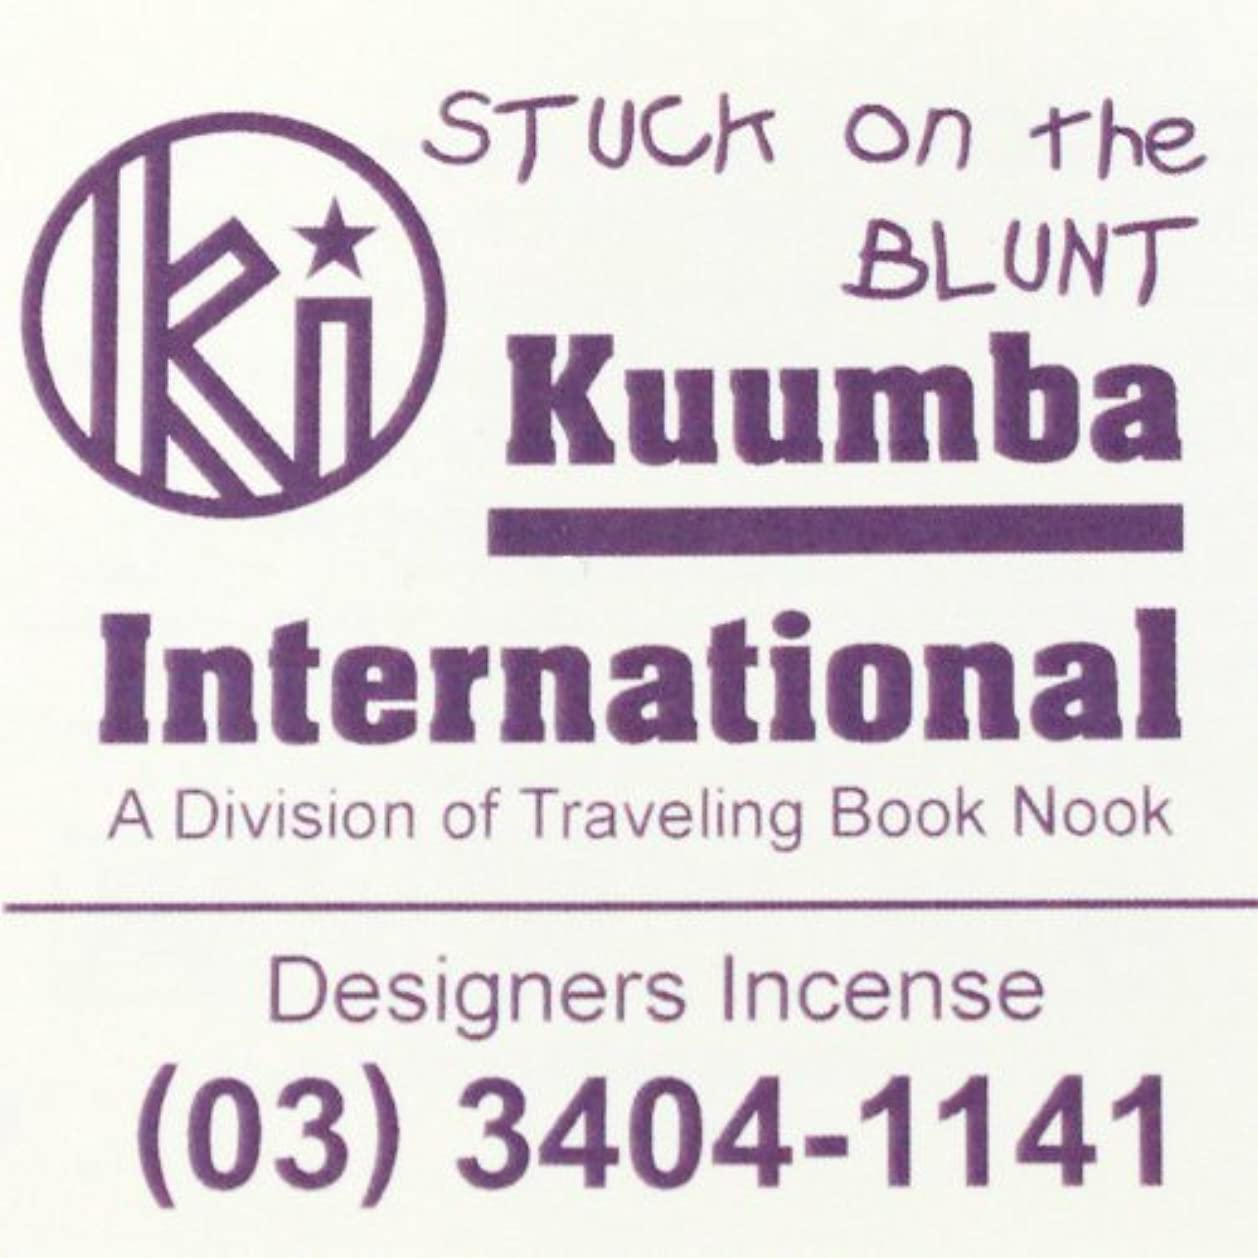 対象全員山積みの(クンバ) KUUMBA『incense』(STUCK on the BLUNT) (Regular size)